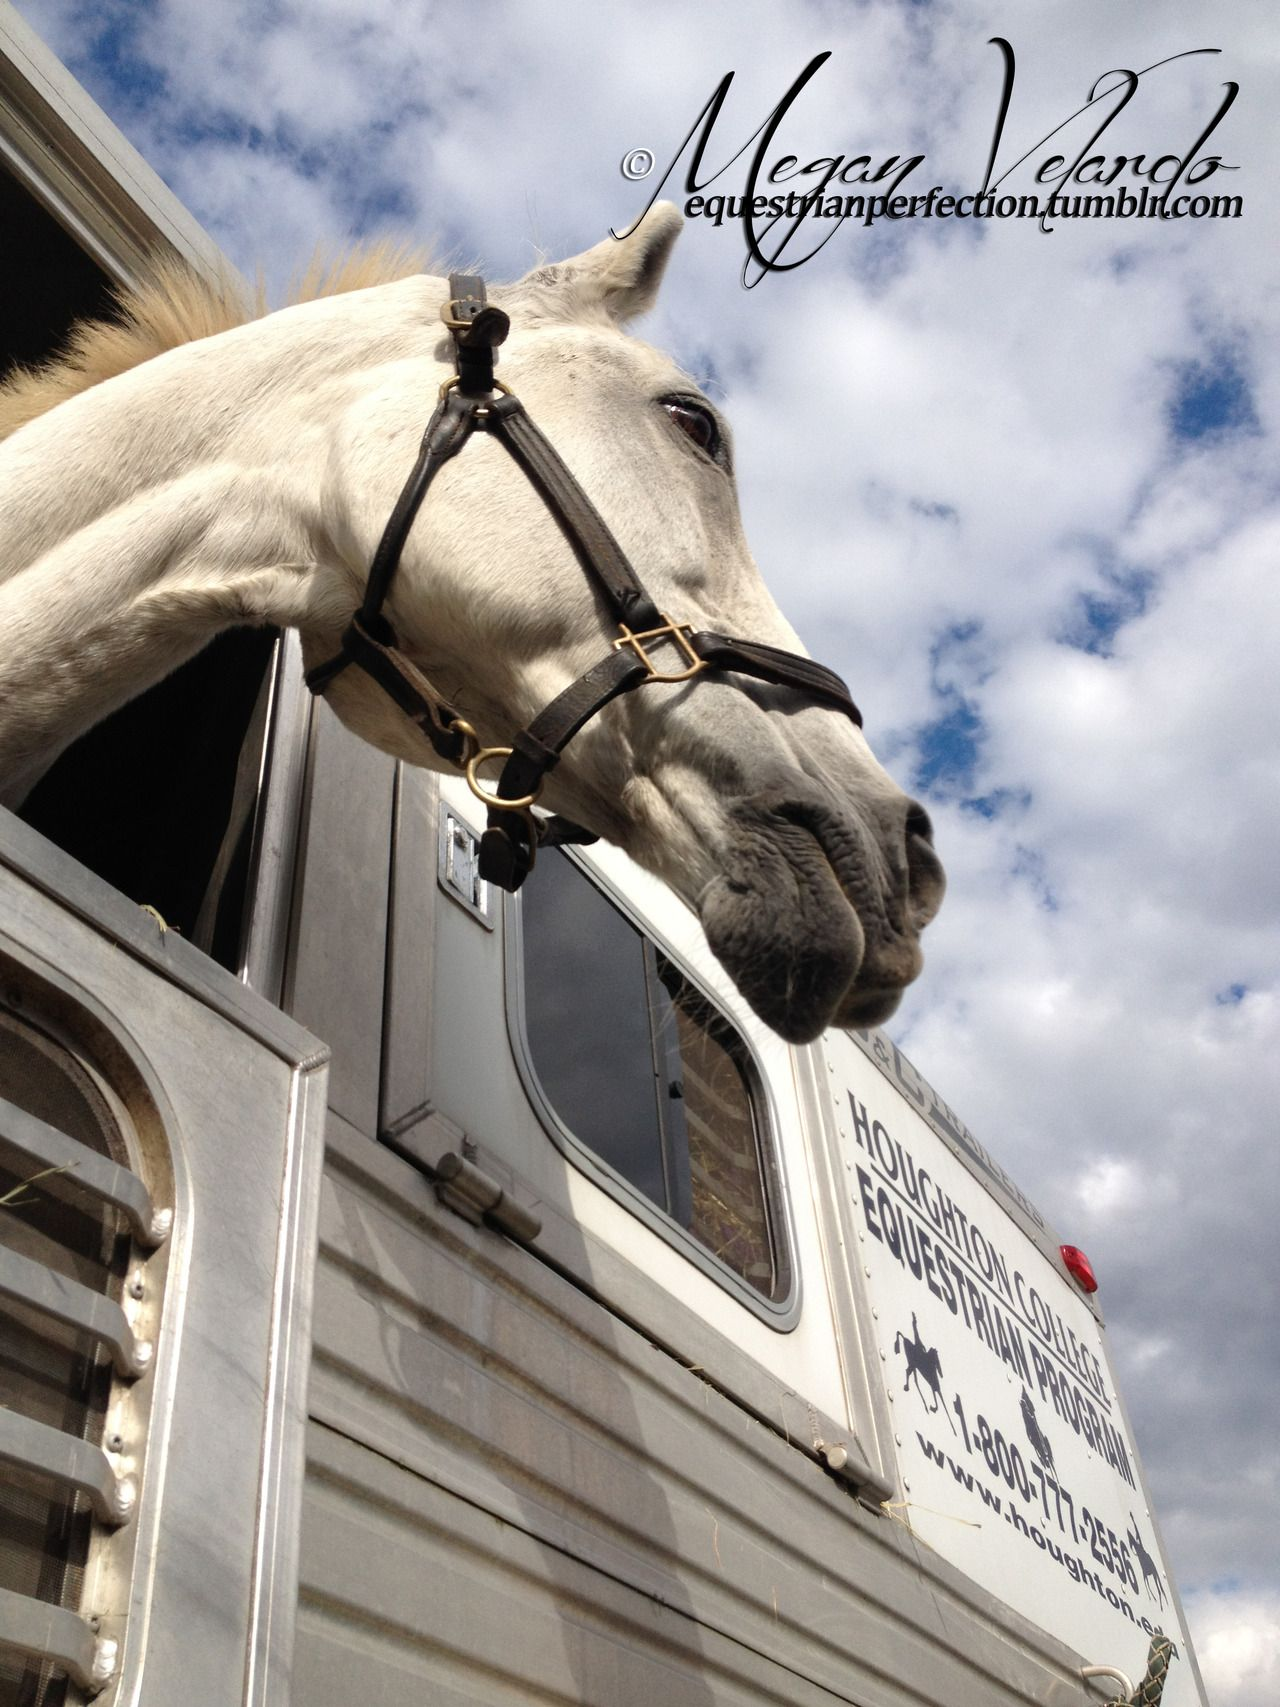 Equestrian Perfection: Photo